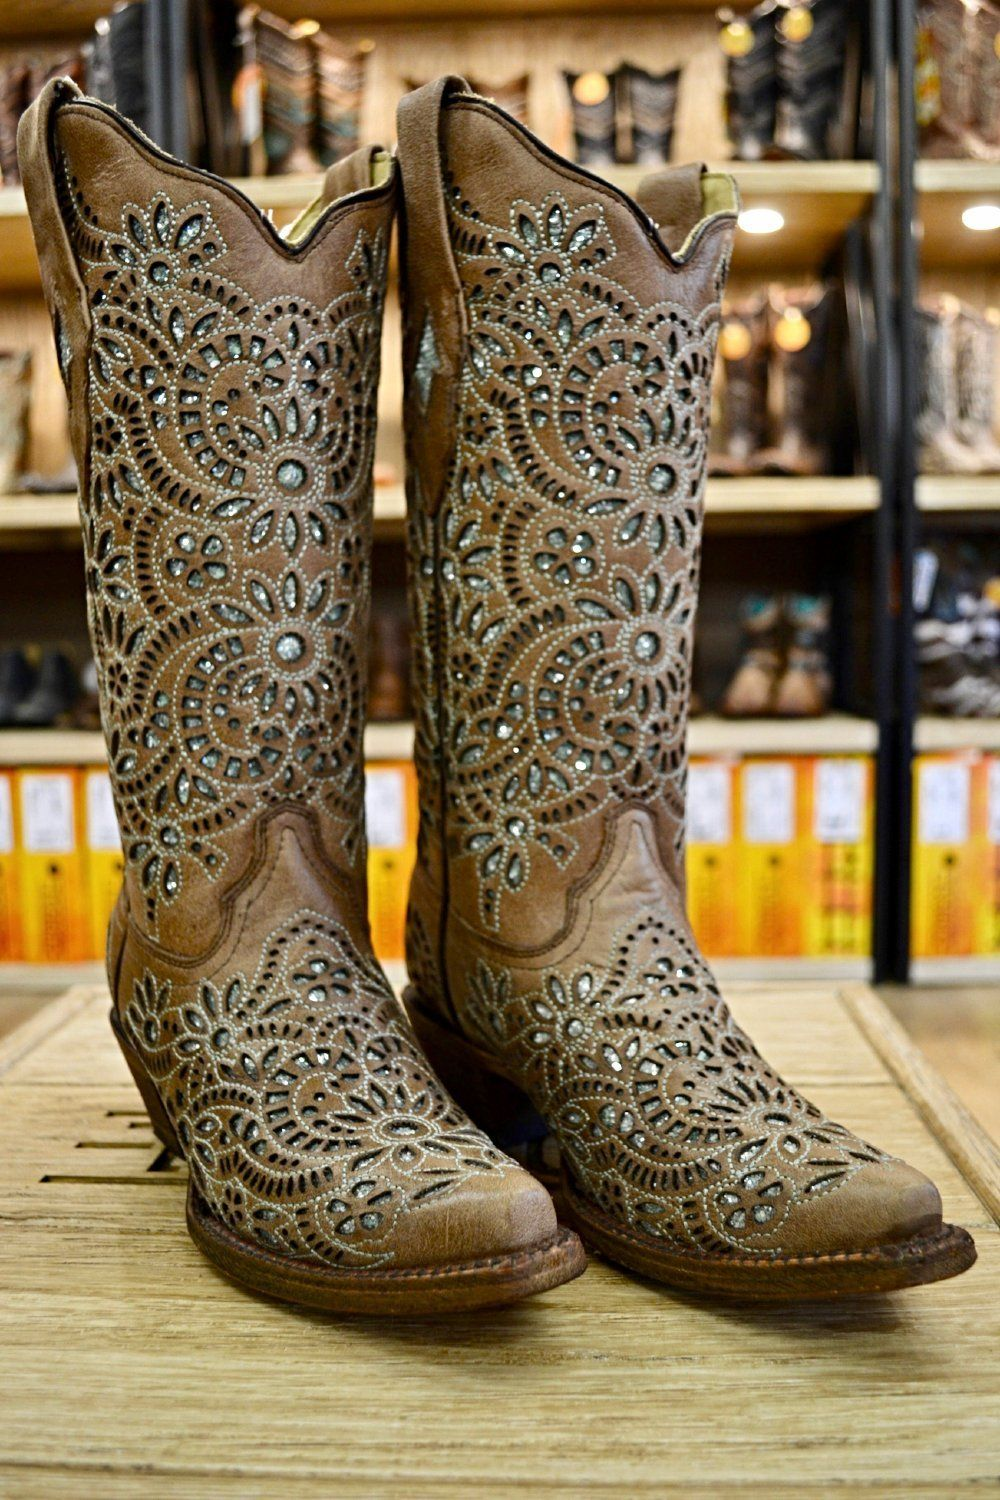 cd32f66a9556 Corral Ladies Light Brown w/ Green Glitter Inlay Snip Toe Cowgirl Boots  A3352